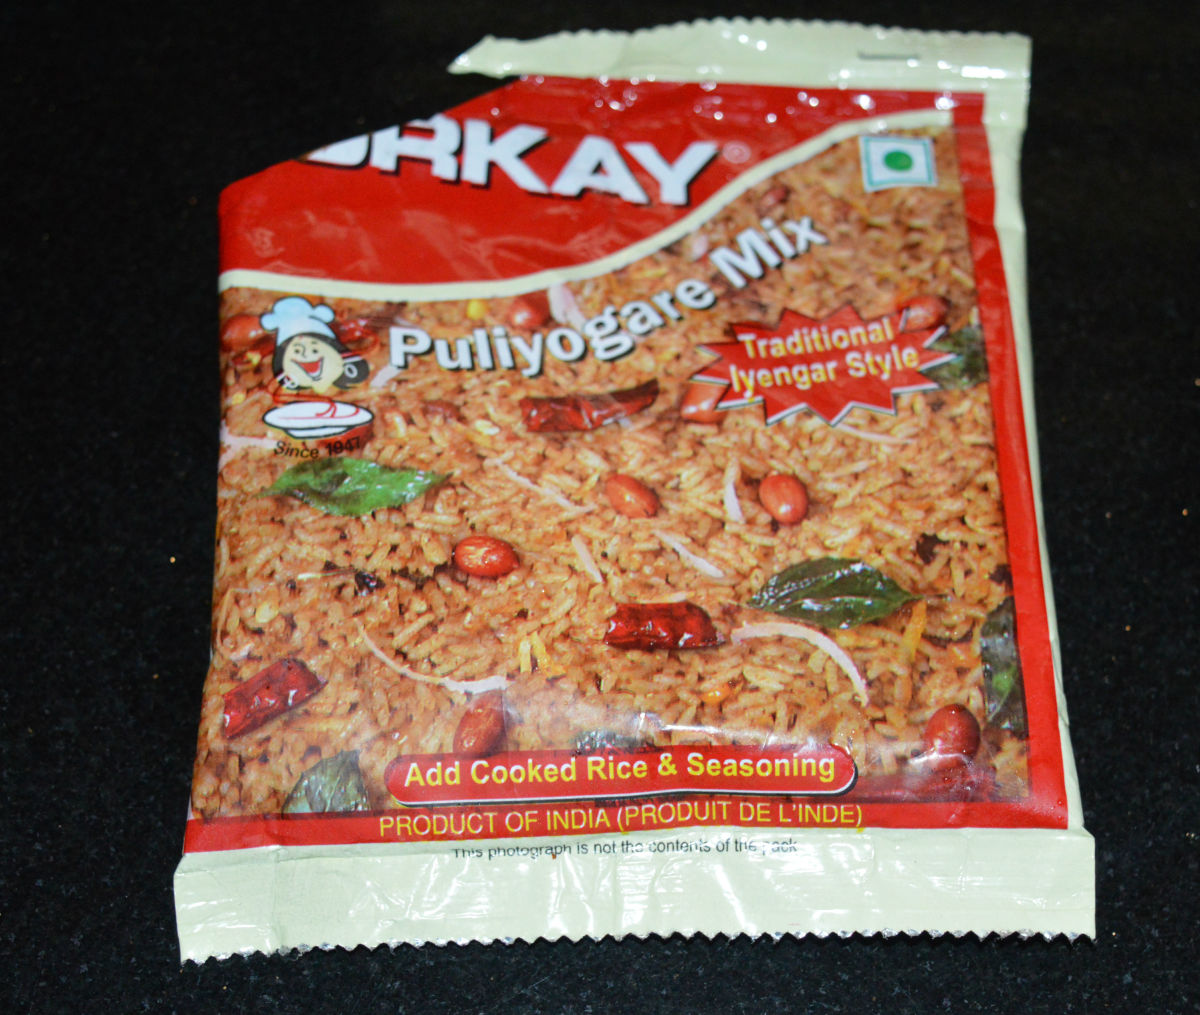 Orkay puliyogare mix. You get many other brands also.